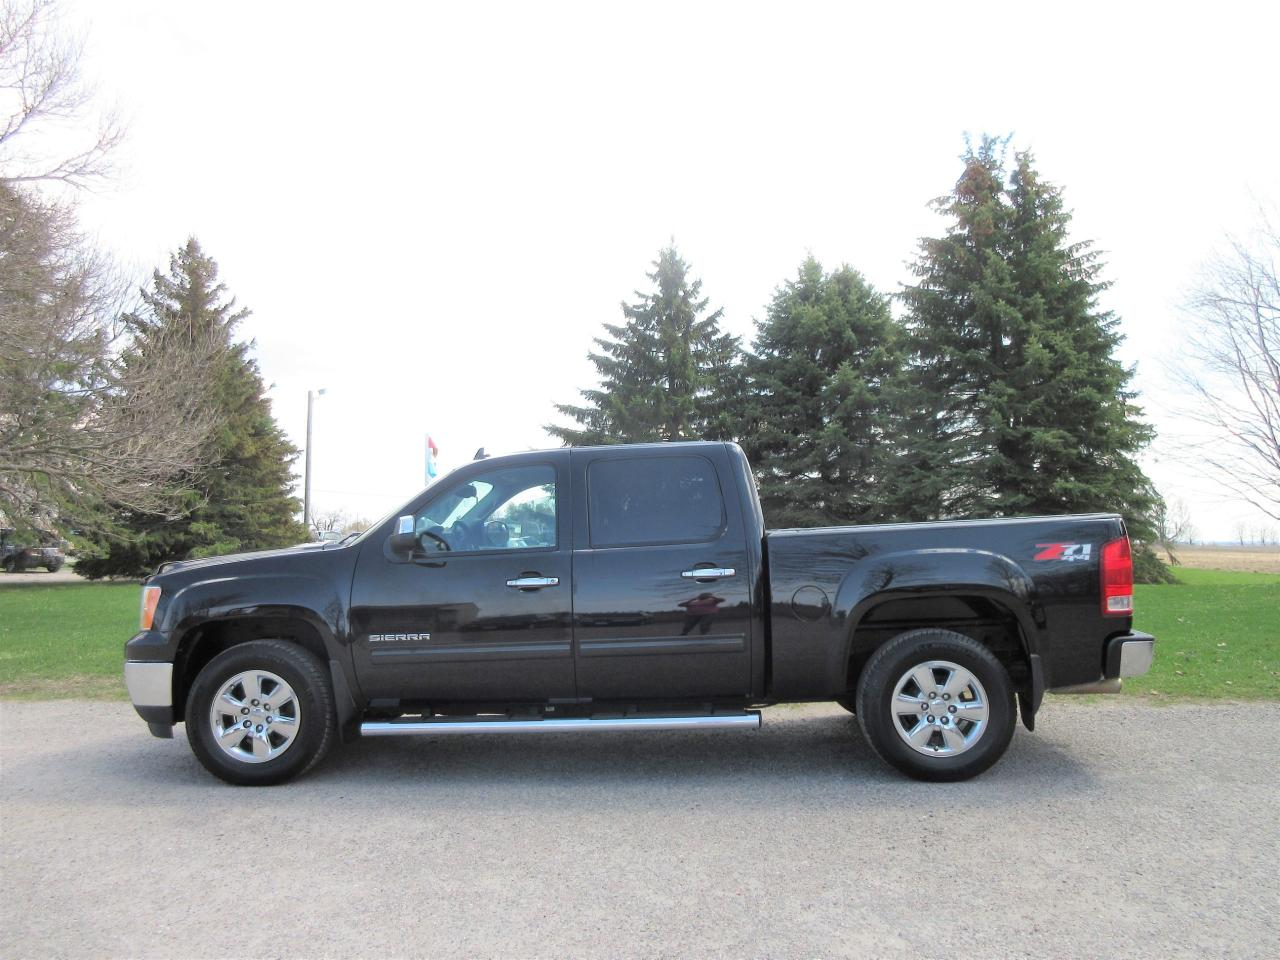 sierra i gmc with bds suspension